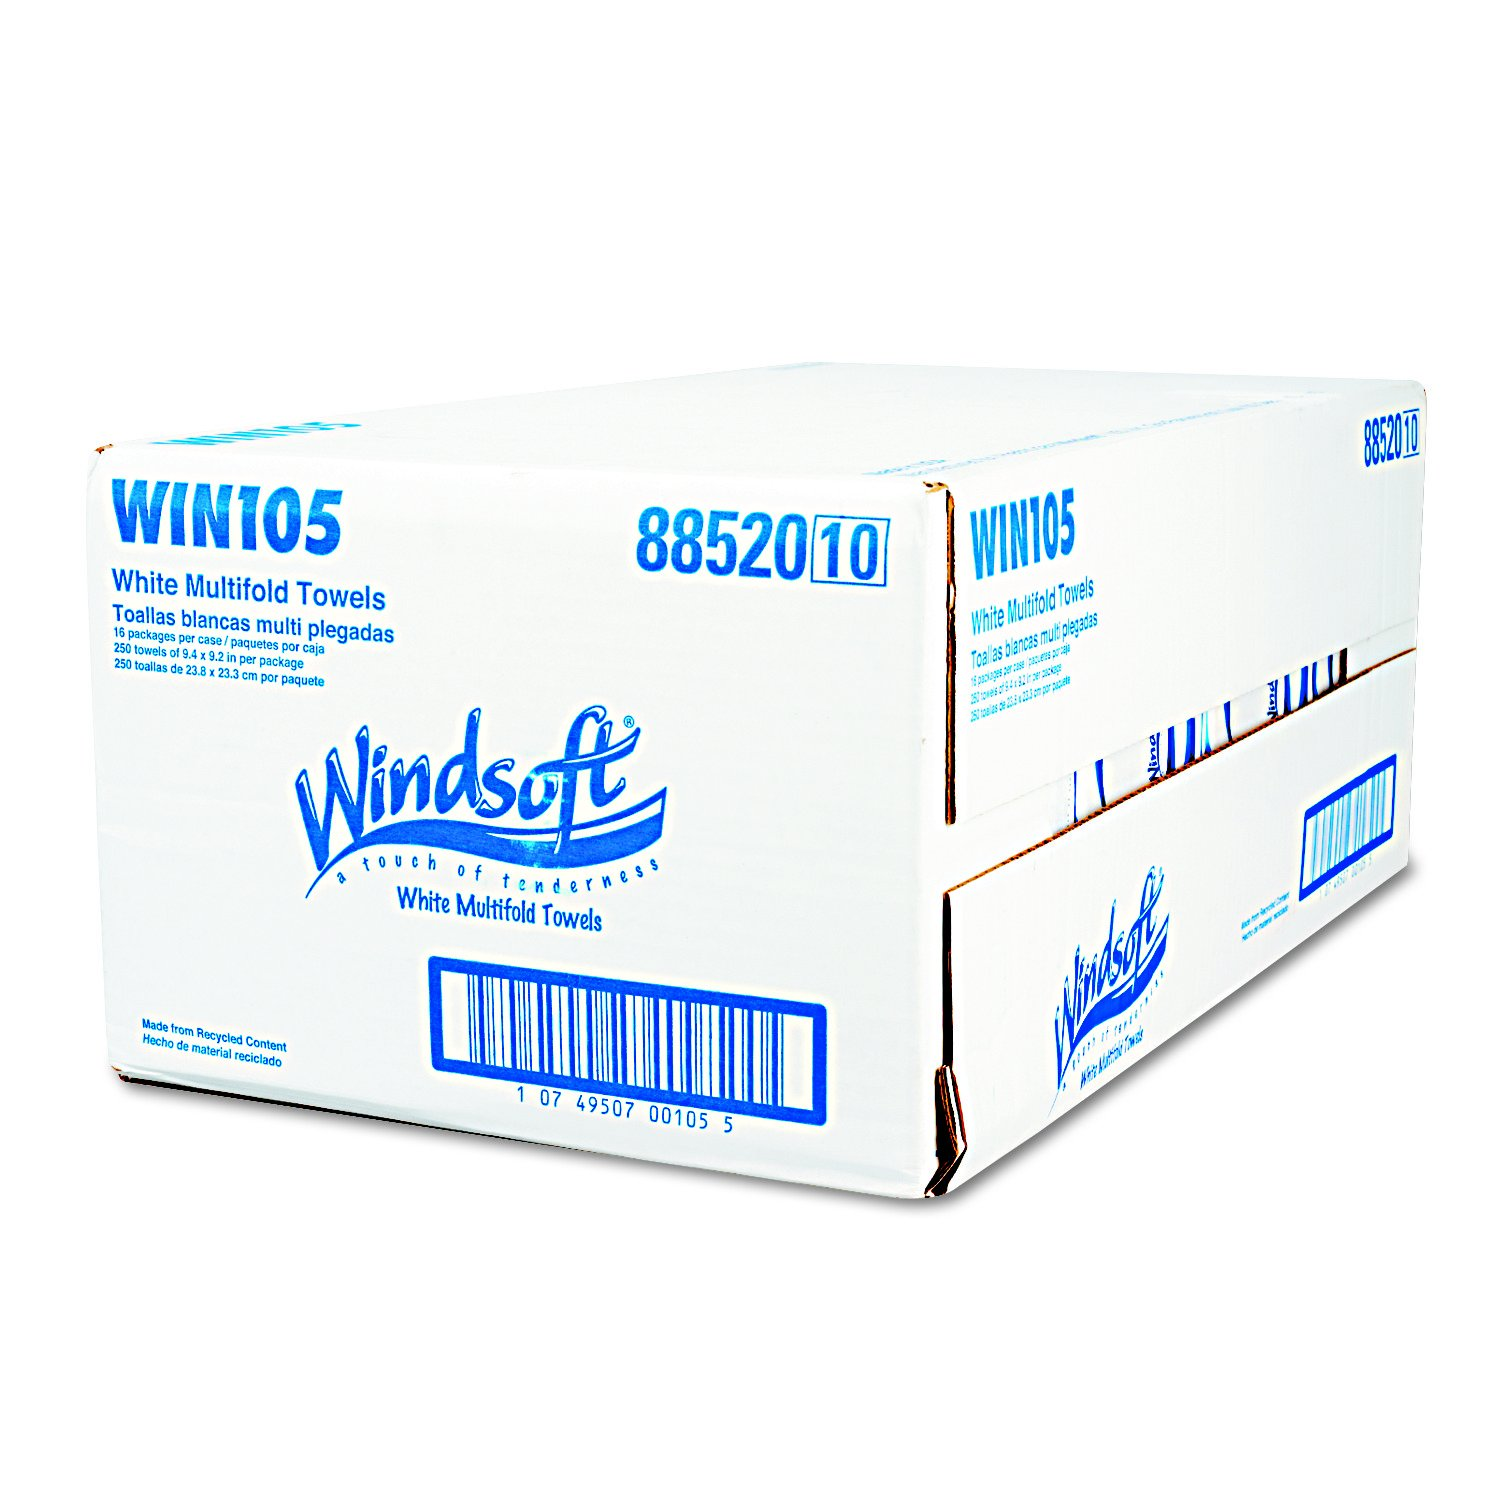 Windsoft 105 Multifold Paper Towels, 1-Ply, 9 1/5 x 9 2/5, White, 250 per Pack (Case of 16): Amazon.com: Industrial & Scientific